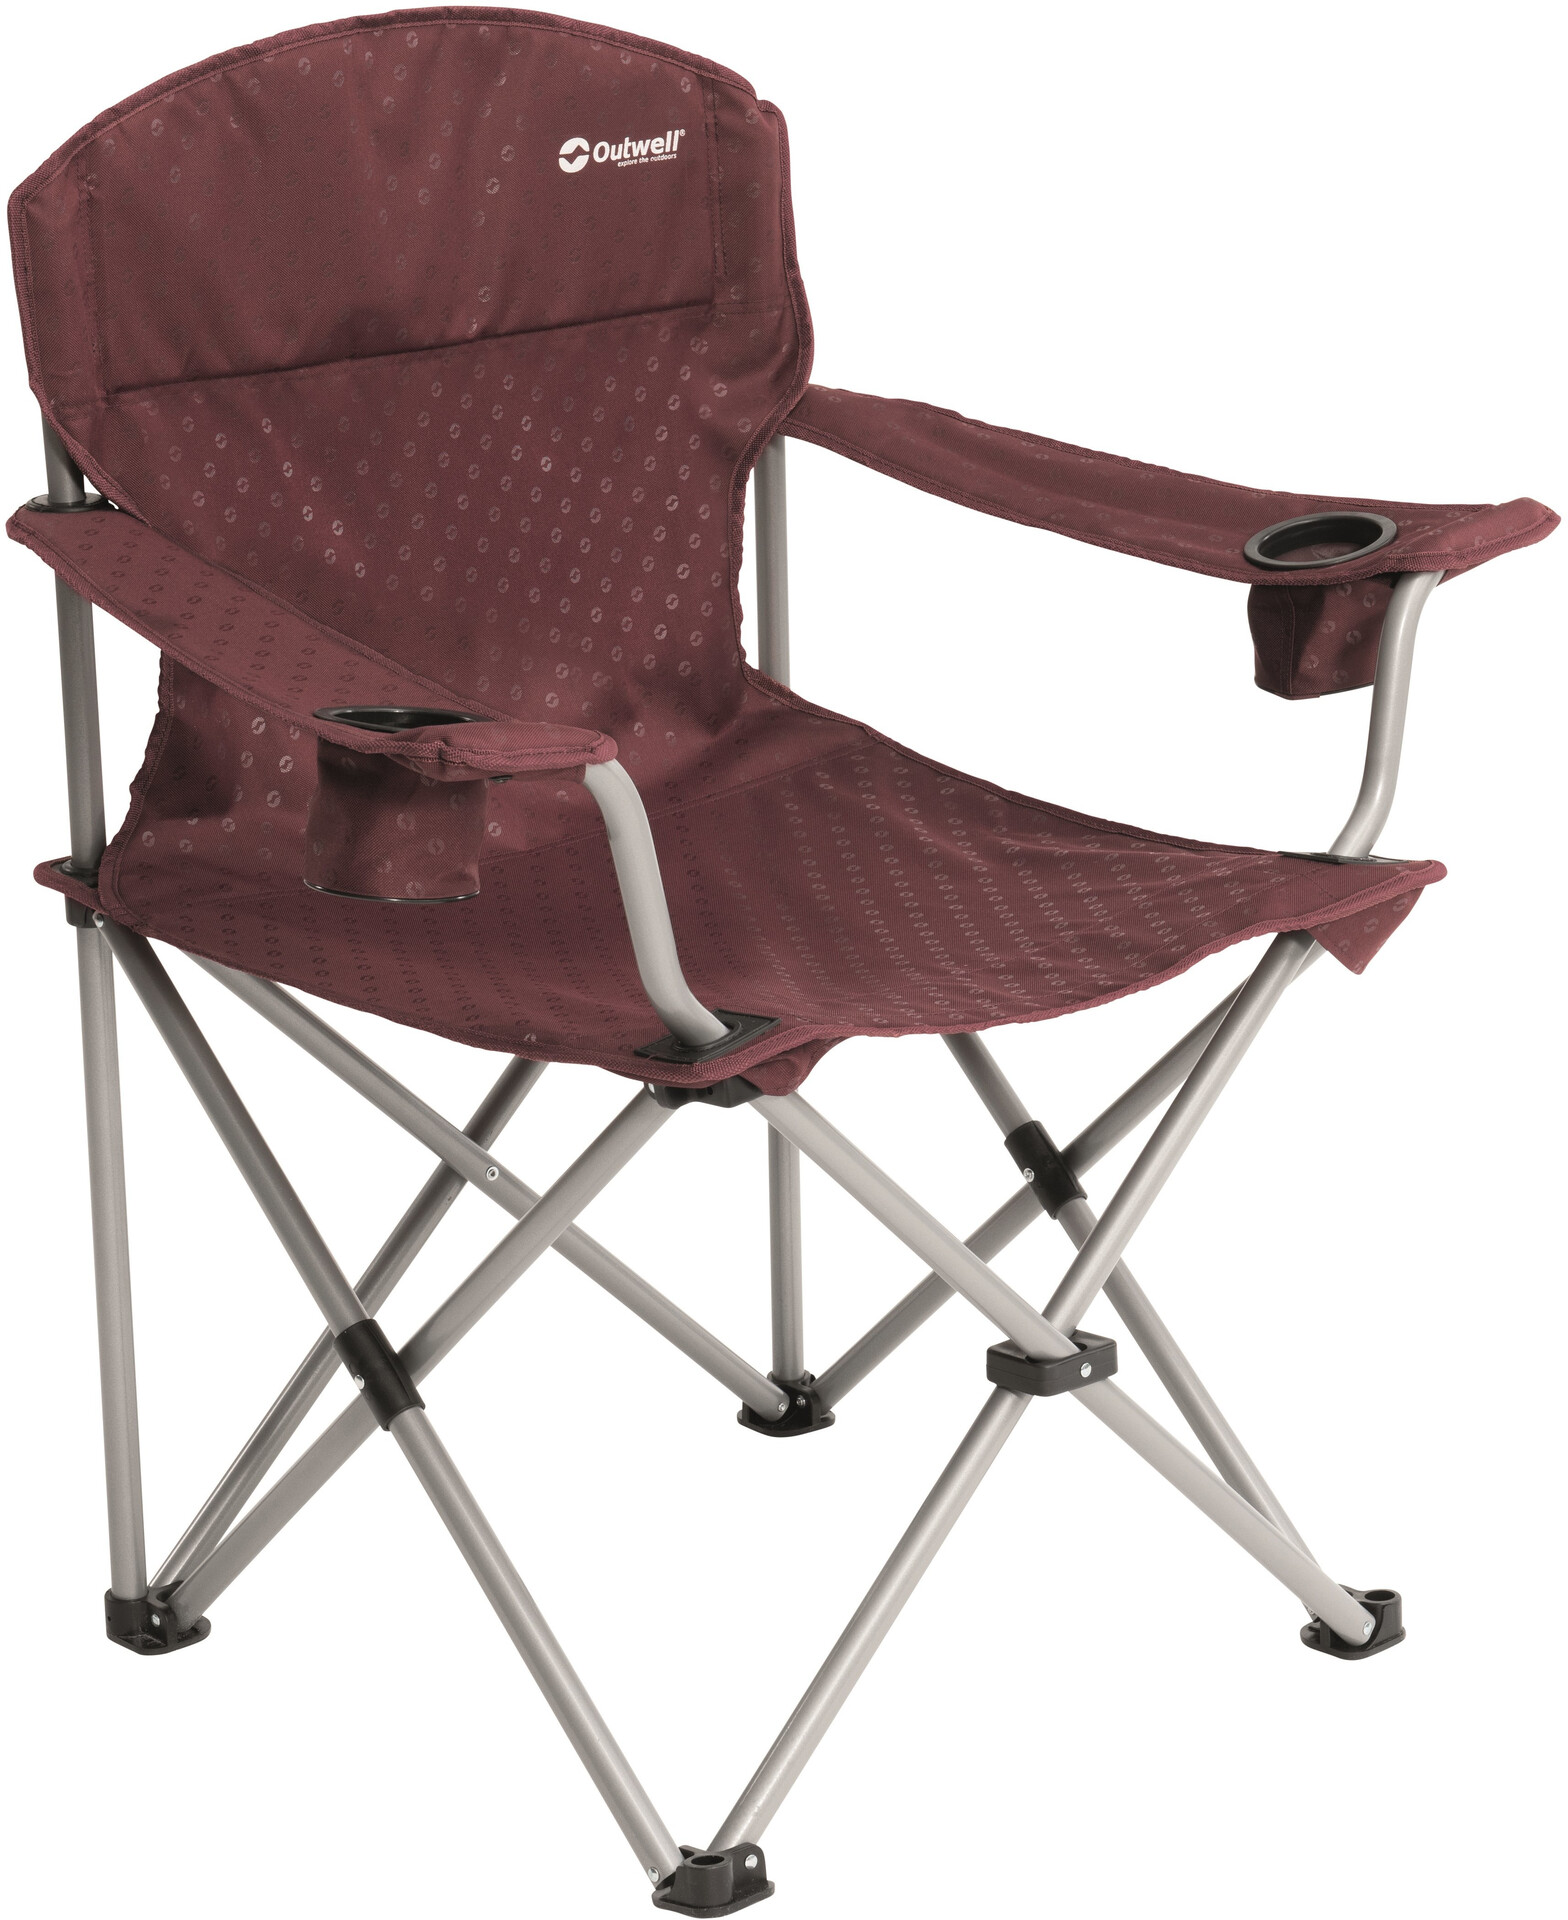 Outwell Catamarca Chaise avec accoudoirs XL, claret